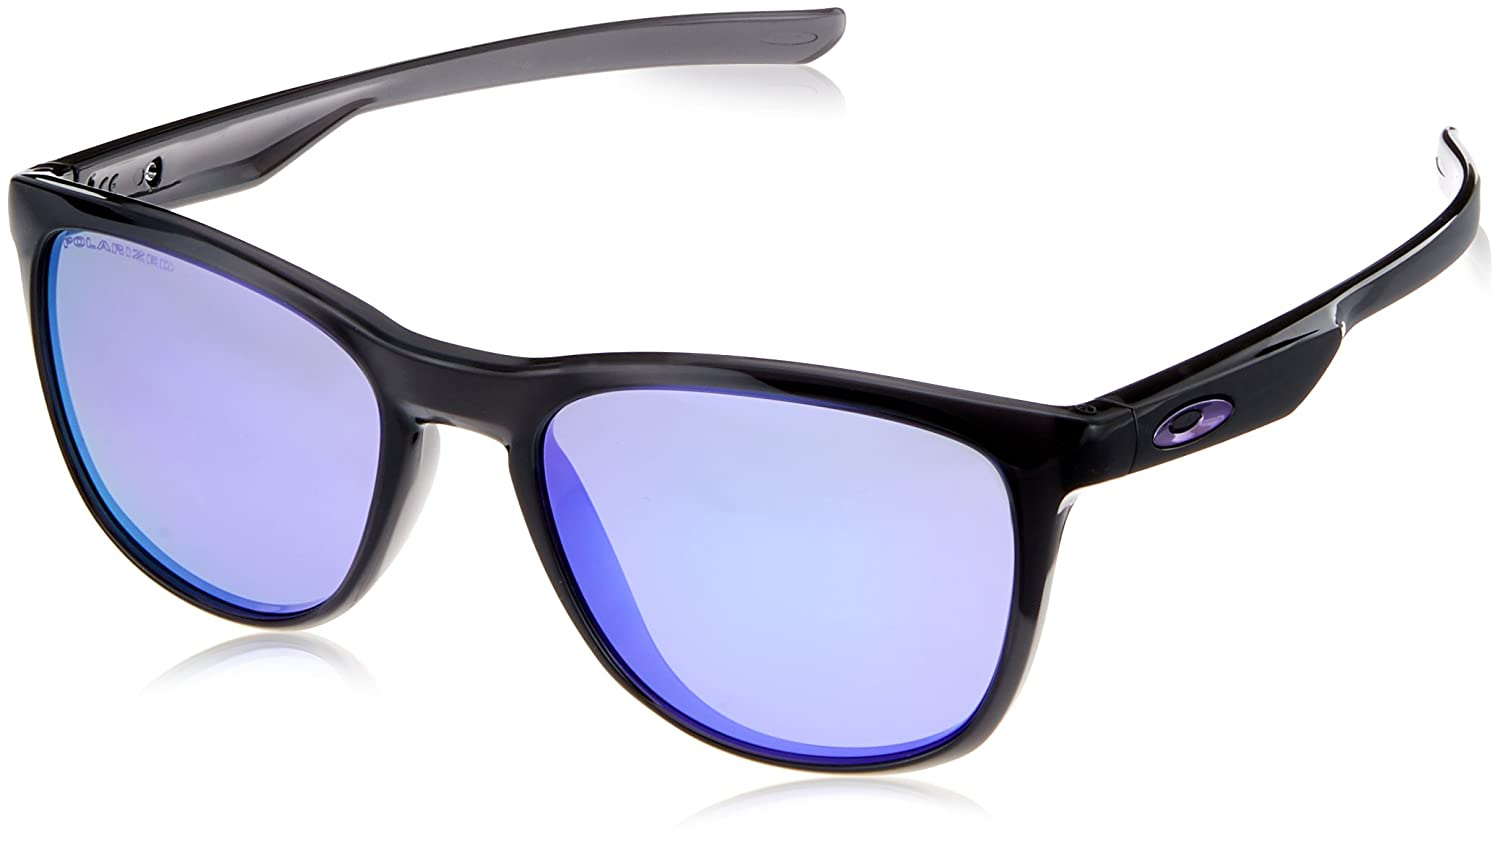 f84ebef066 Amazon.com  Oakley Trillbe X Sunglasses Black Ink Violet  Oakley  Clothing